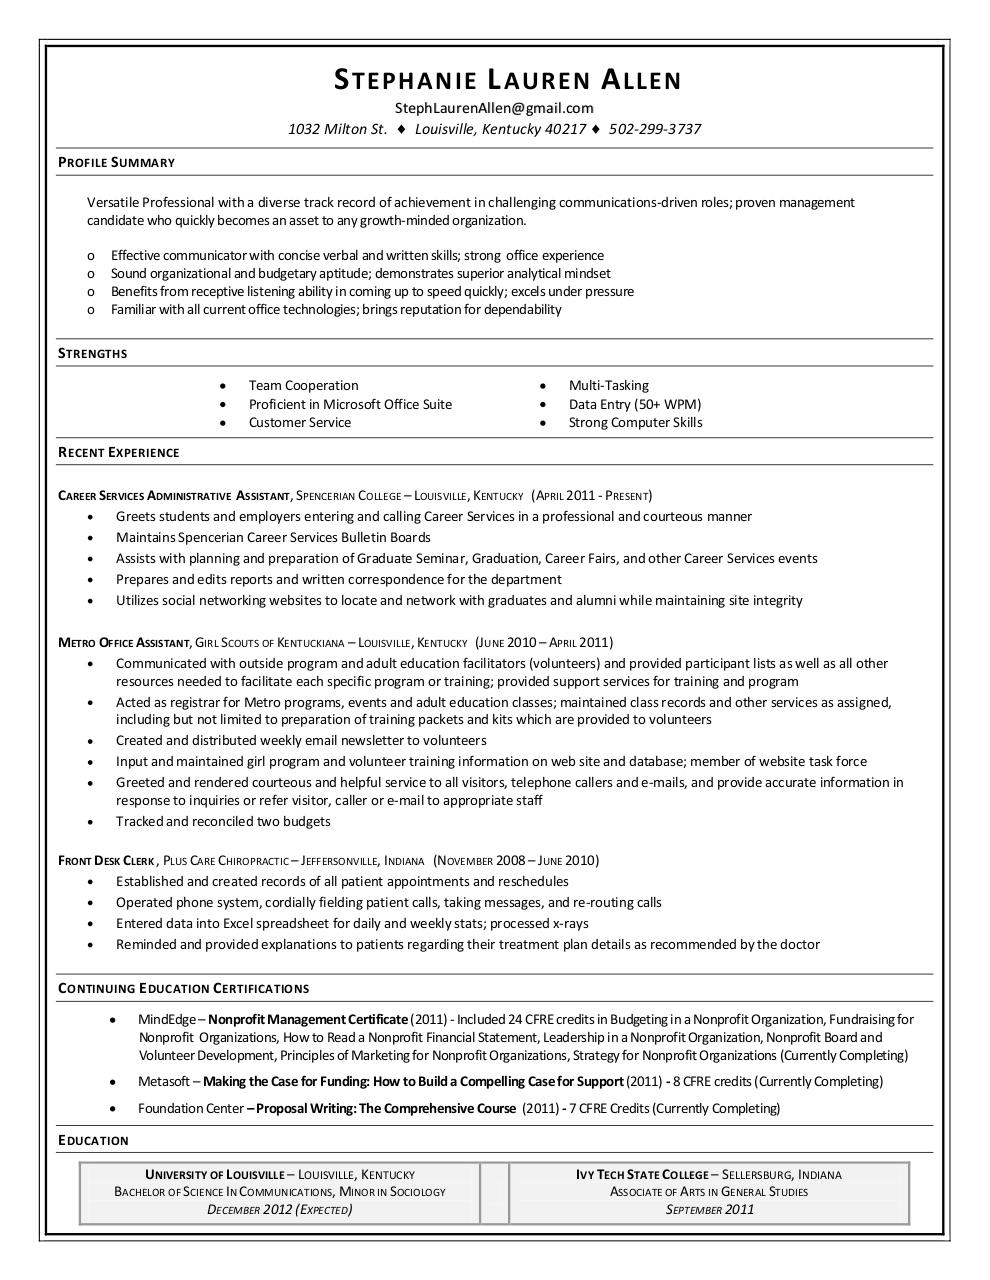 Proficient Resume Gallery - resume format examples 2018 - proficient in microsoft office